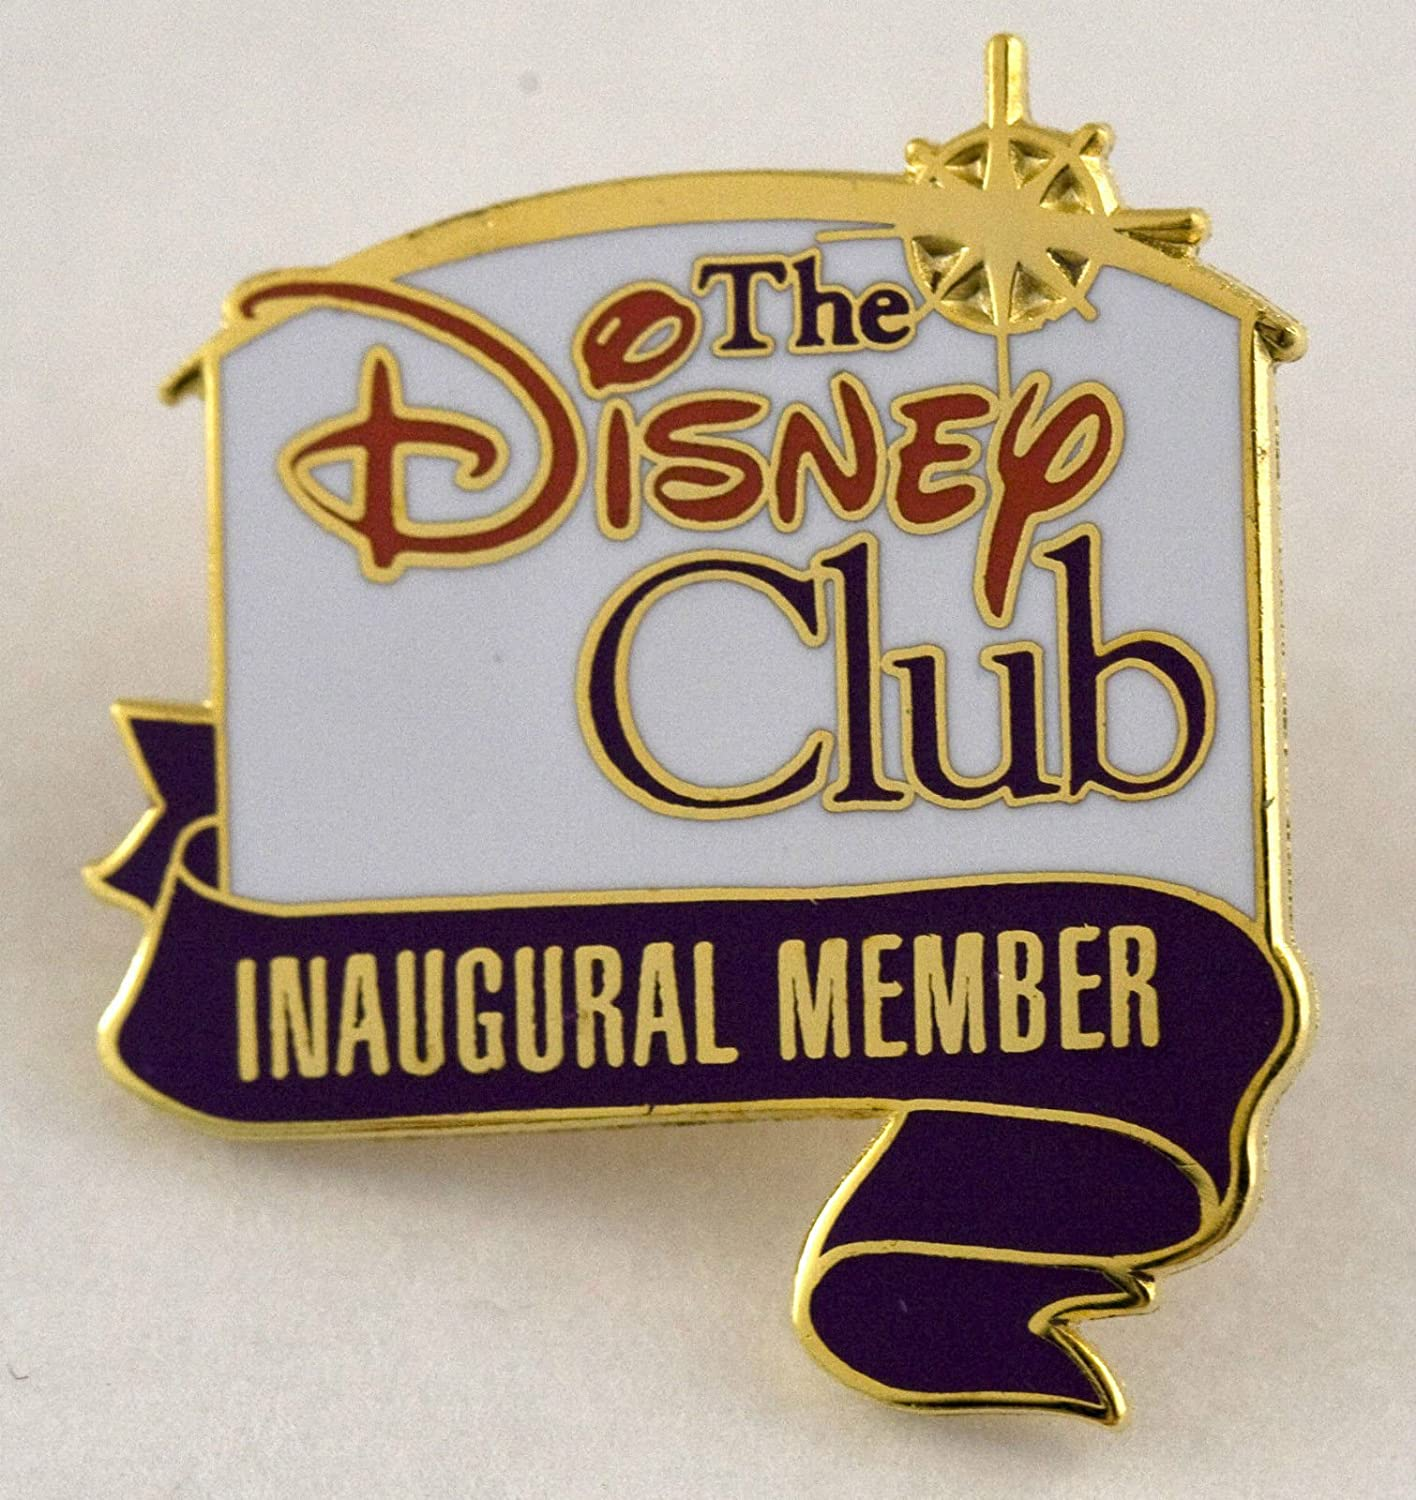 WALT DISNEY DISNEYLAND THE DISNEY CLUB INAUGURAL MEMBER LAPEL PIN BADGE BUTTON